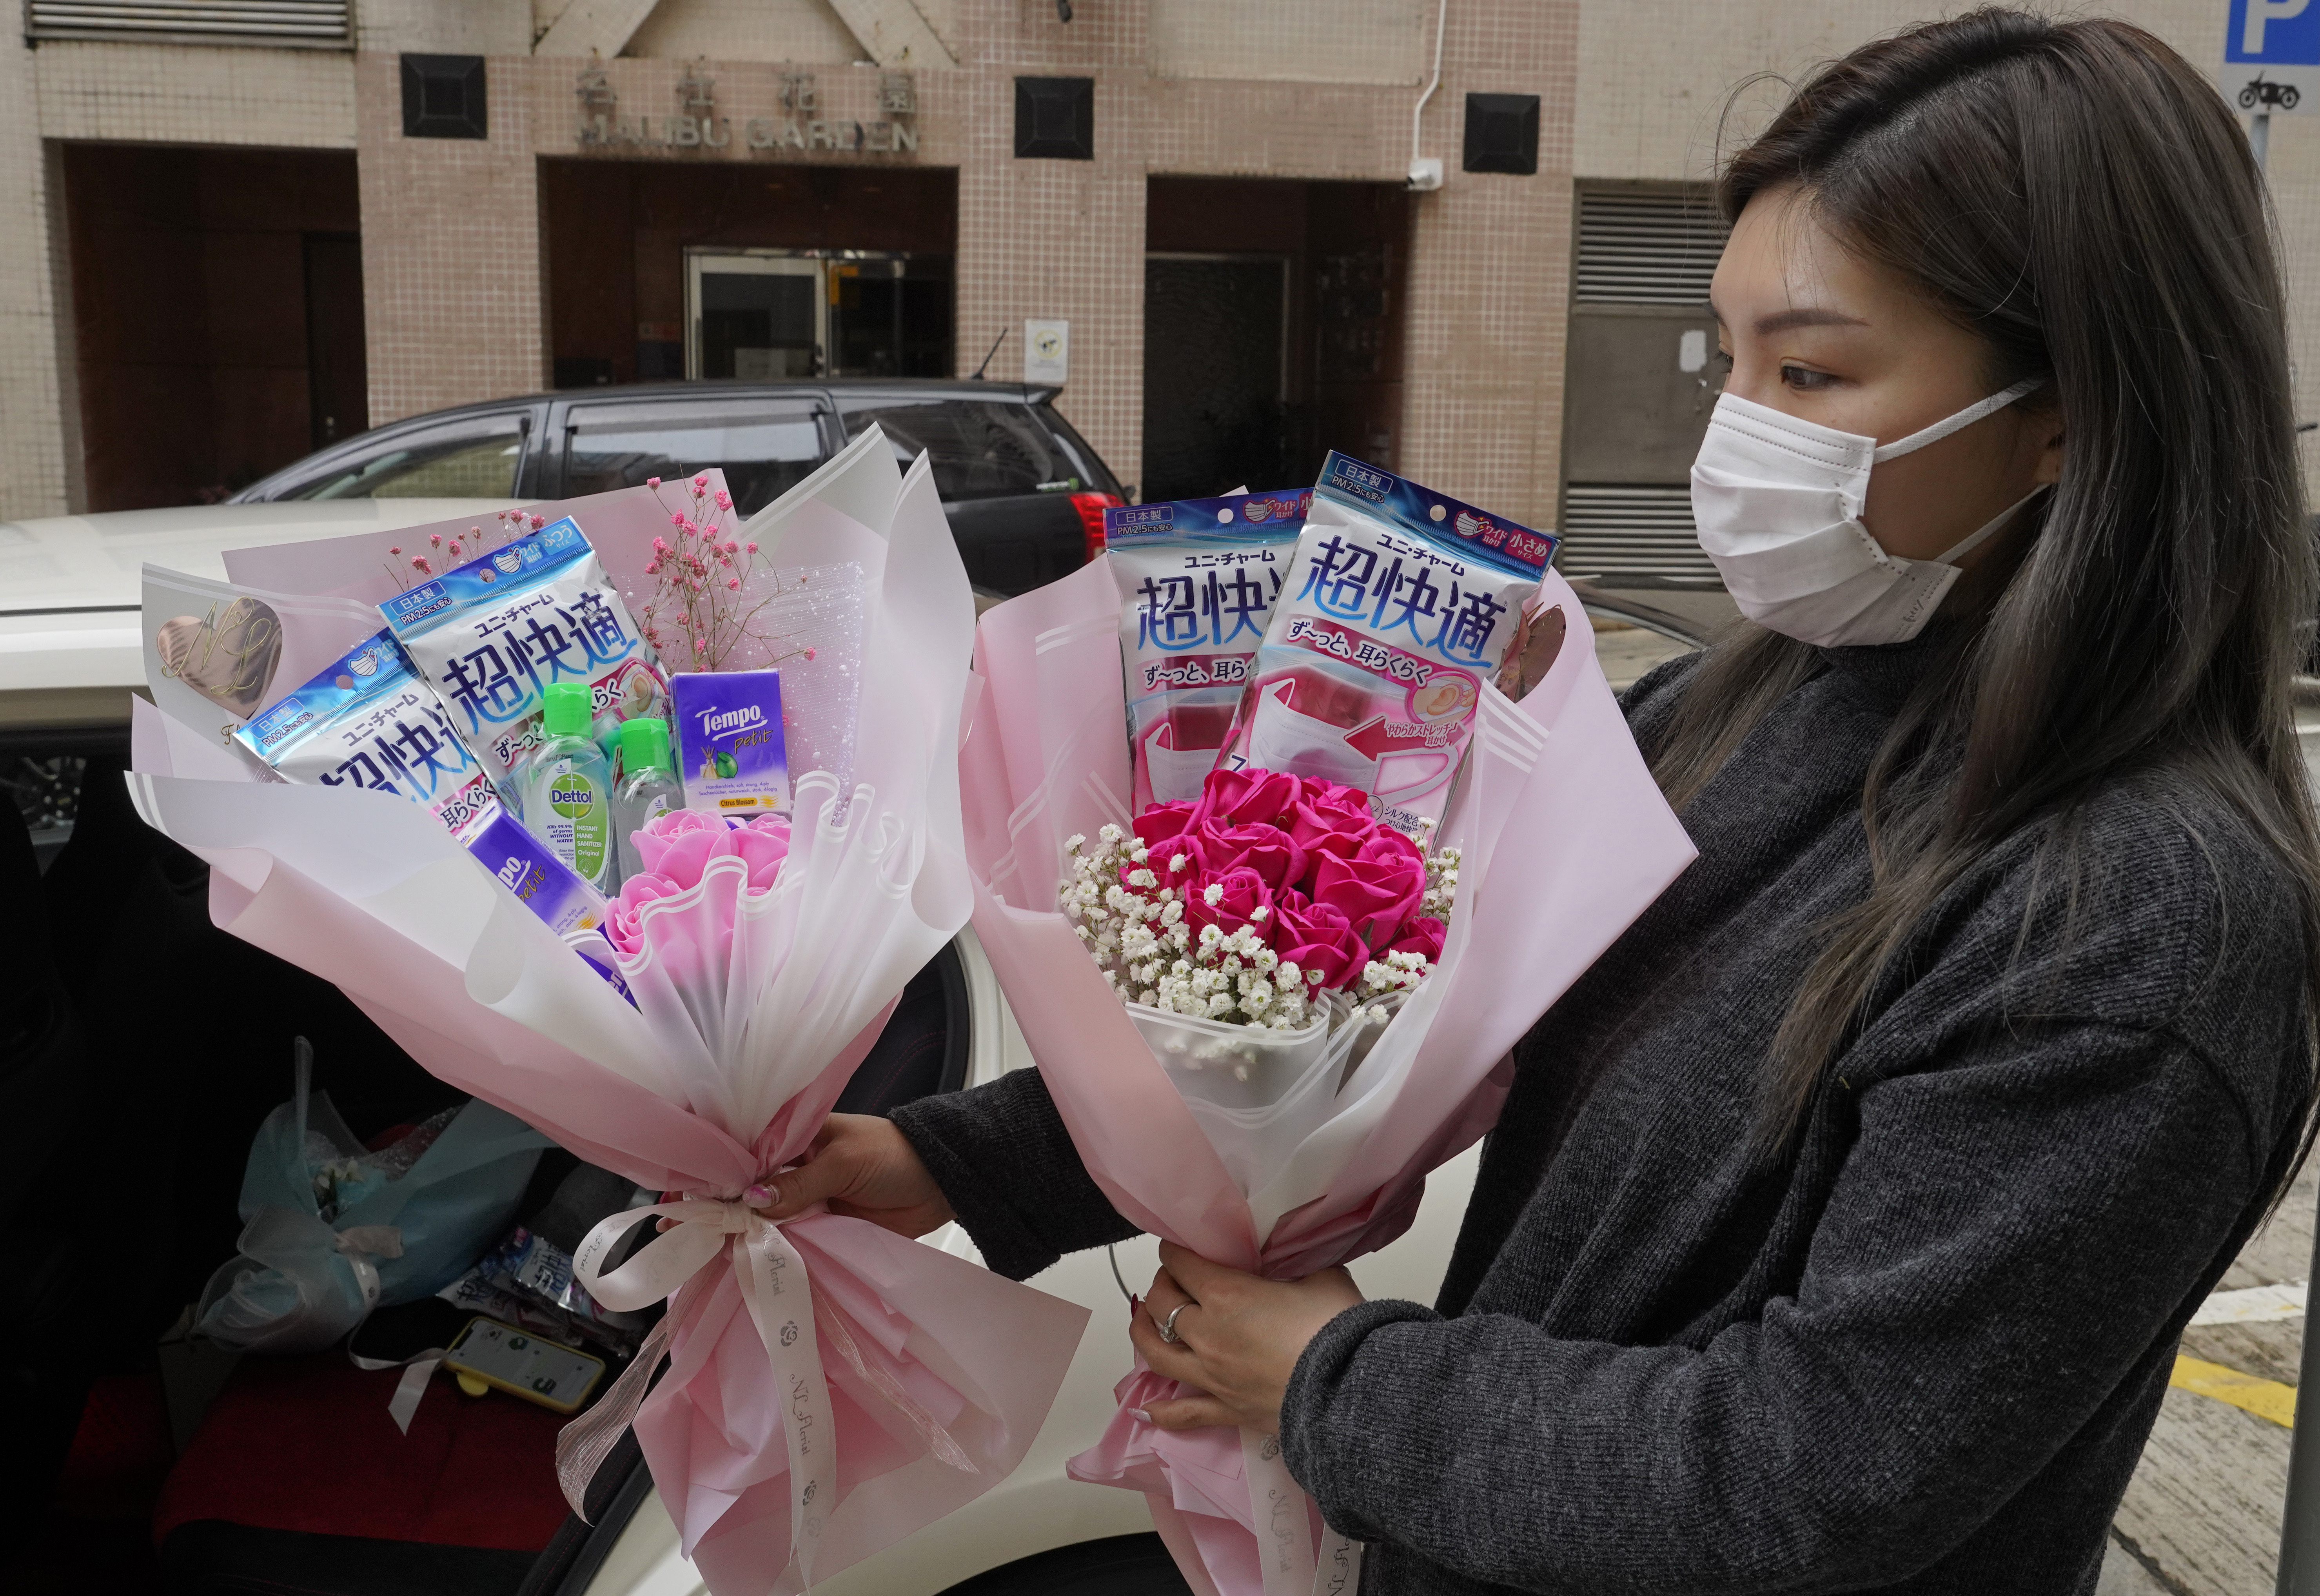 Chinese, Hong Kong Couples Celebrate Valentine's Day With Masks, Not Roses